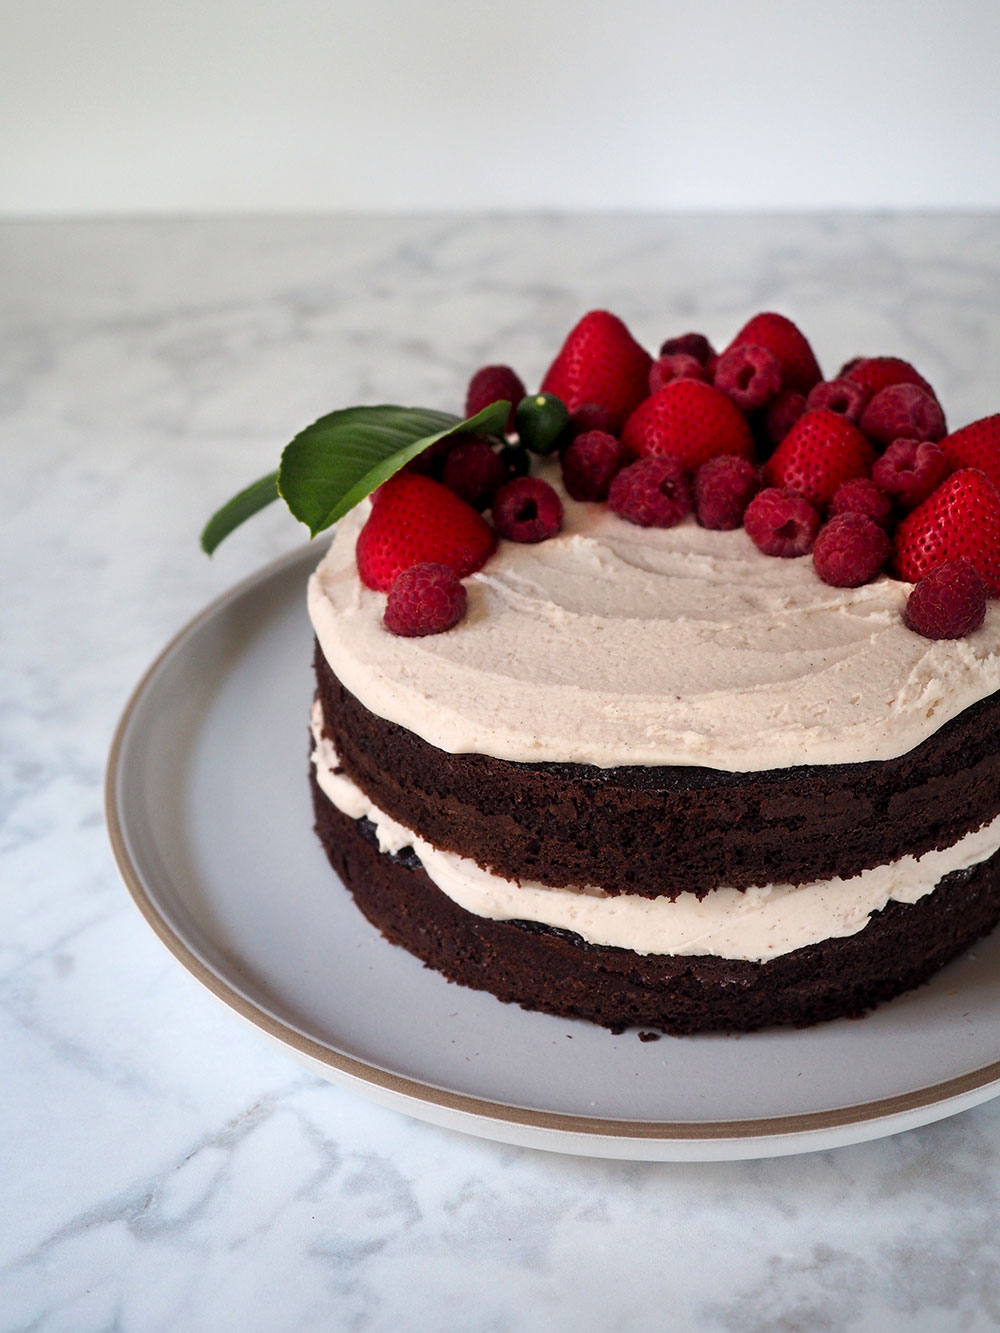 Chocolate Cake with Tea-Infused Berry Frosting - Beginning with Bergamot